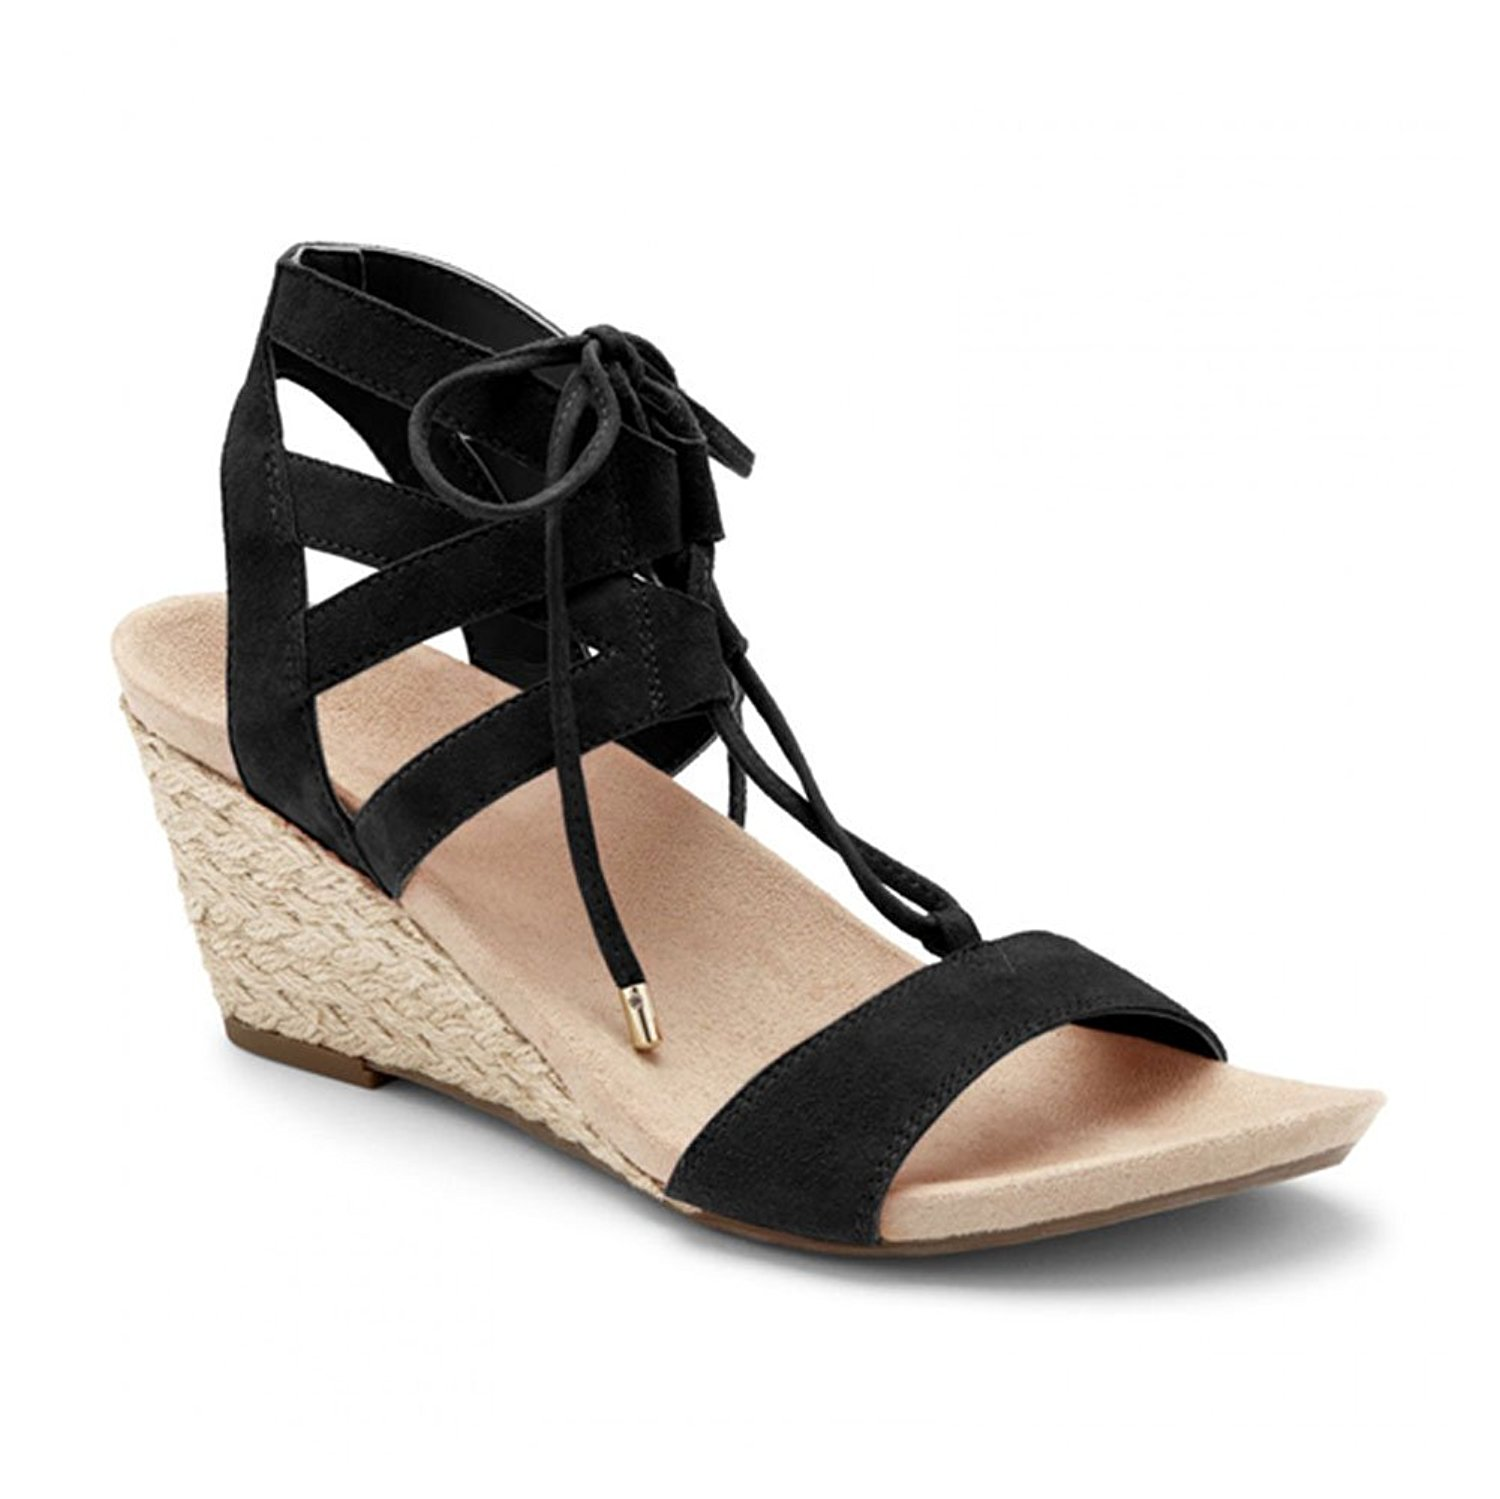 ab08b320ddf Get Quotations · Vionic Womens Noble Tansy Lace Up Espadrille Wedge Sandal  Black Size 6.5